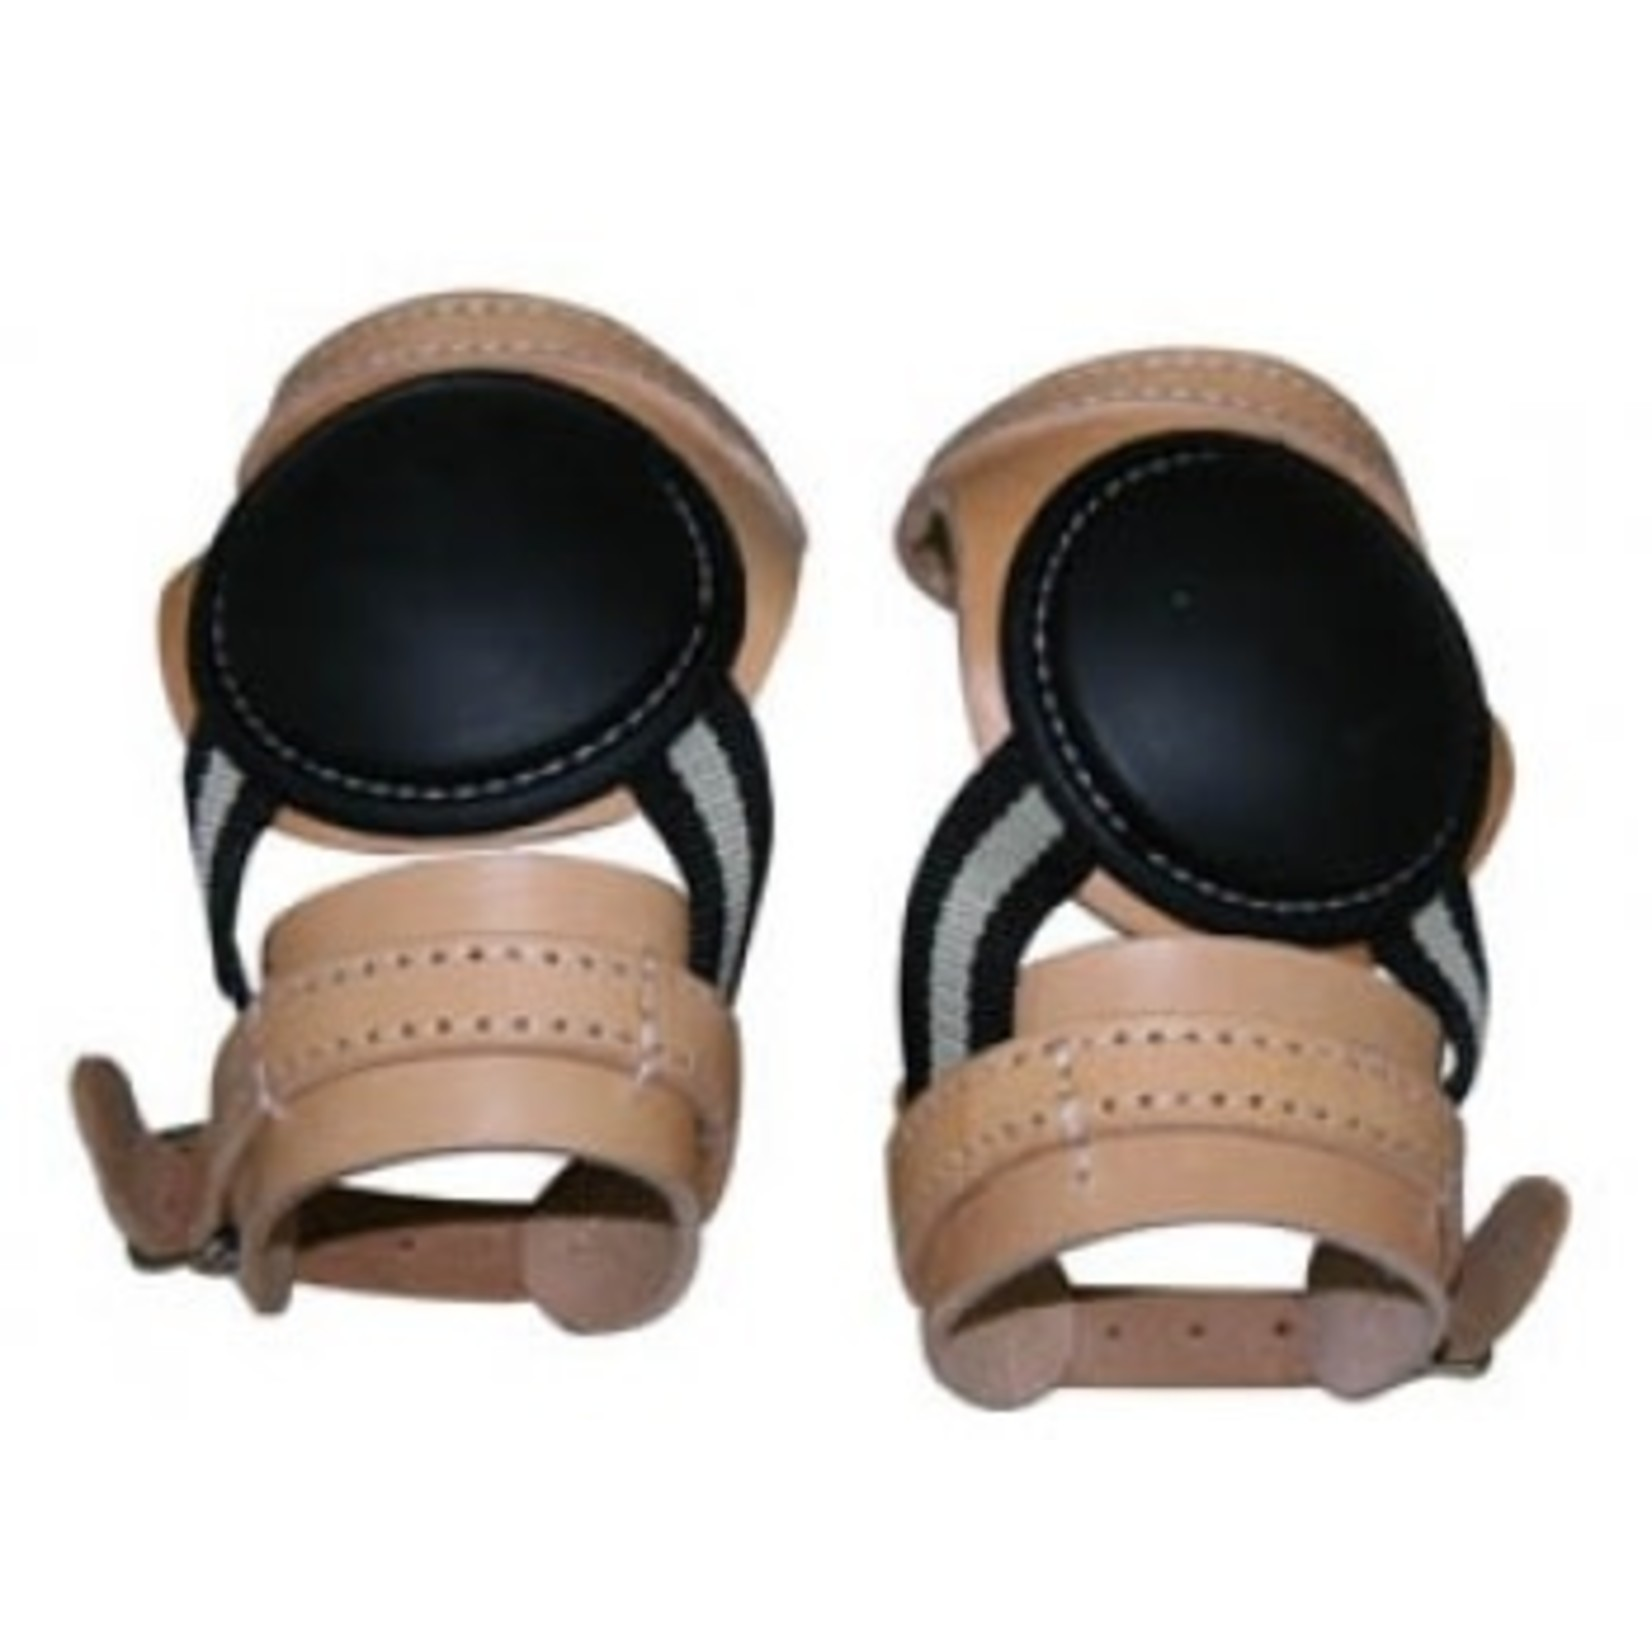 Skid Boots - Leather w/ Neolite Cup